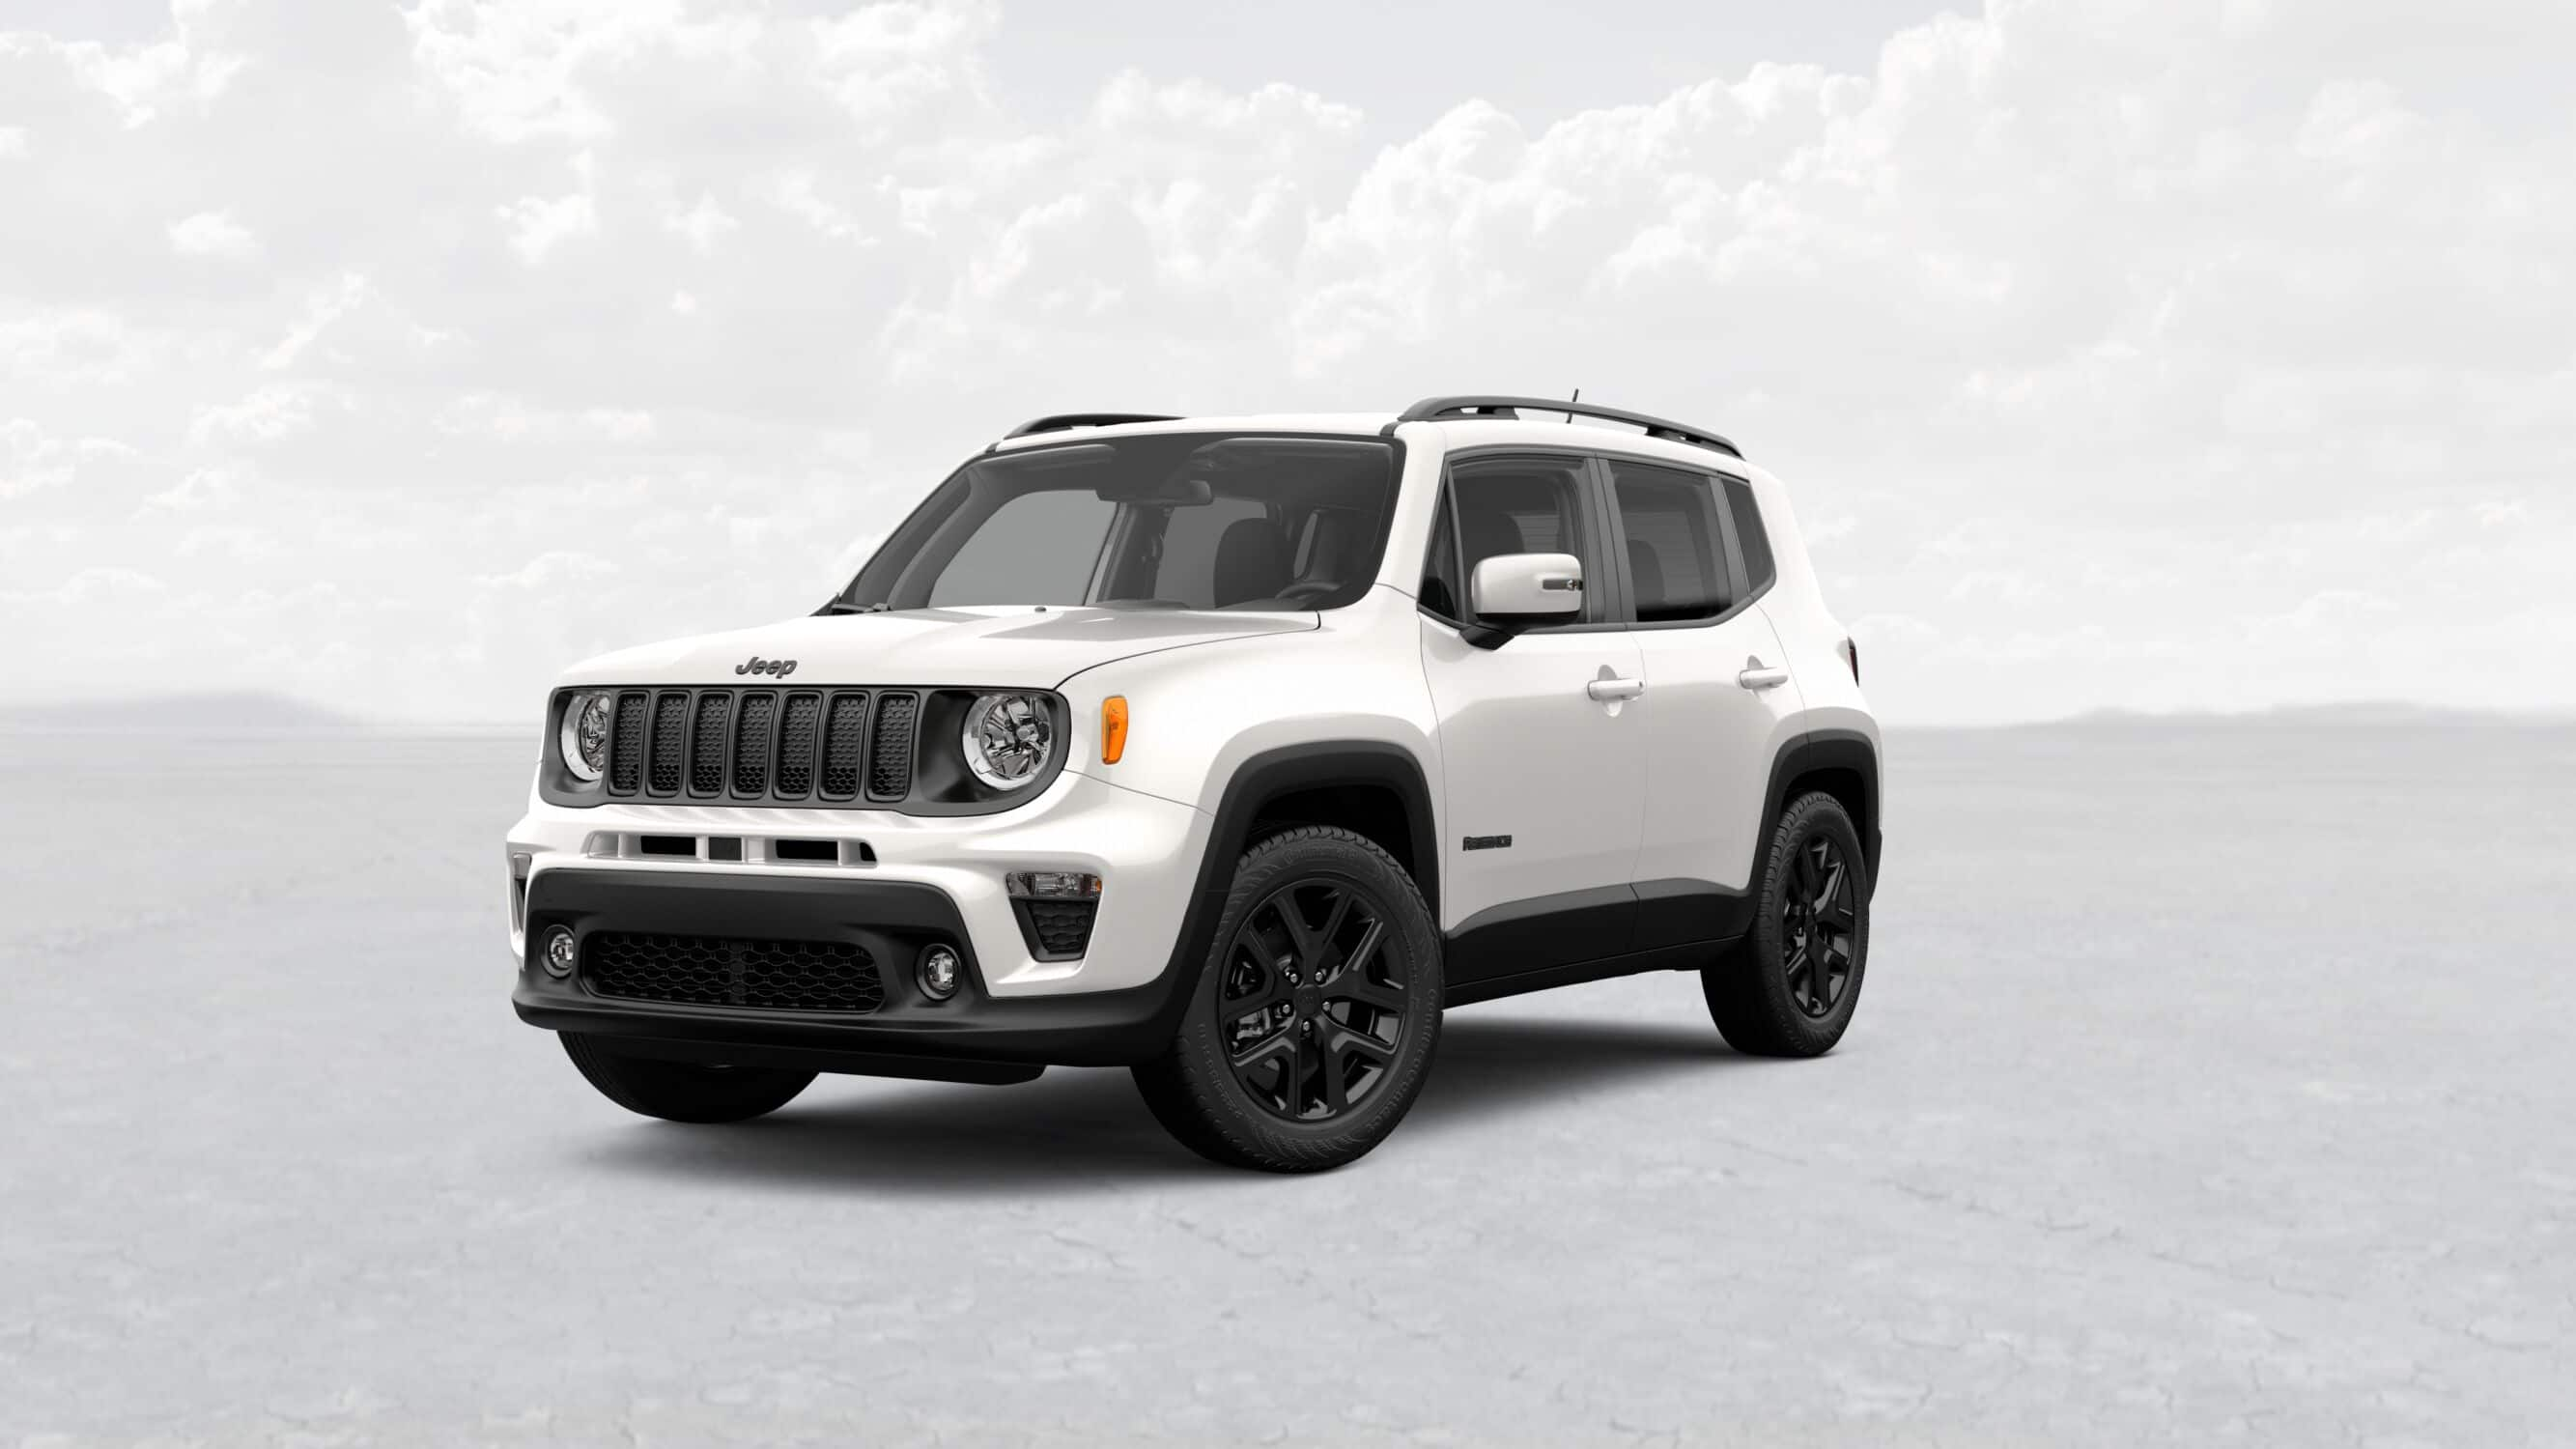 2019 Jeep Renegade Altitude White Exterior Front Picture